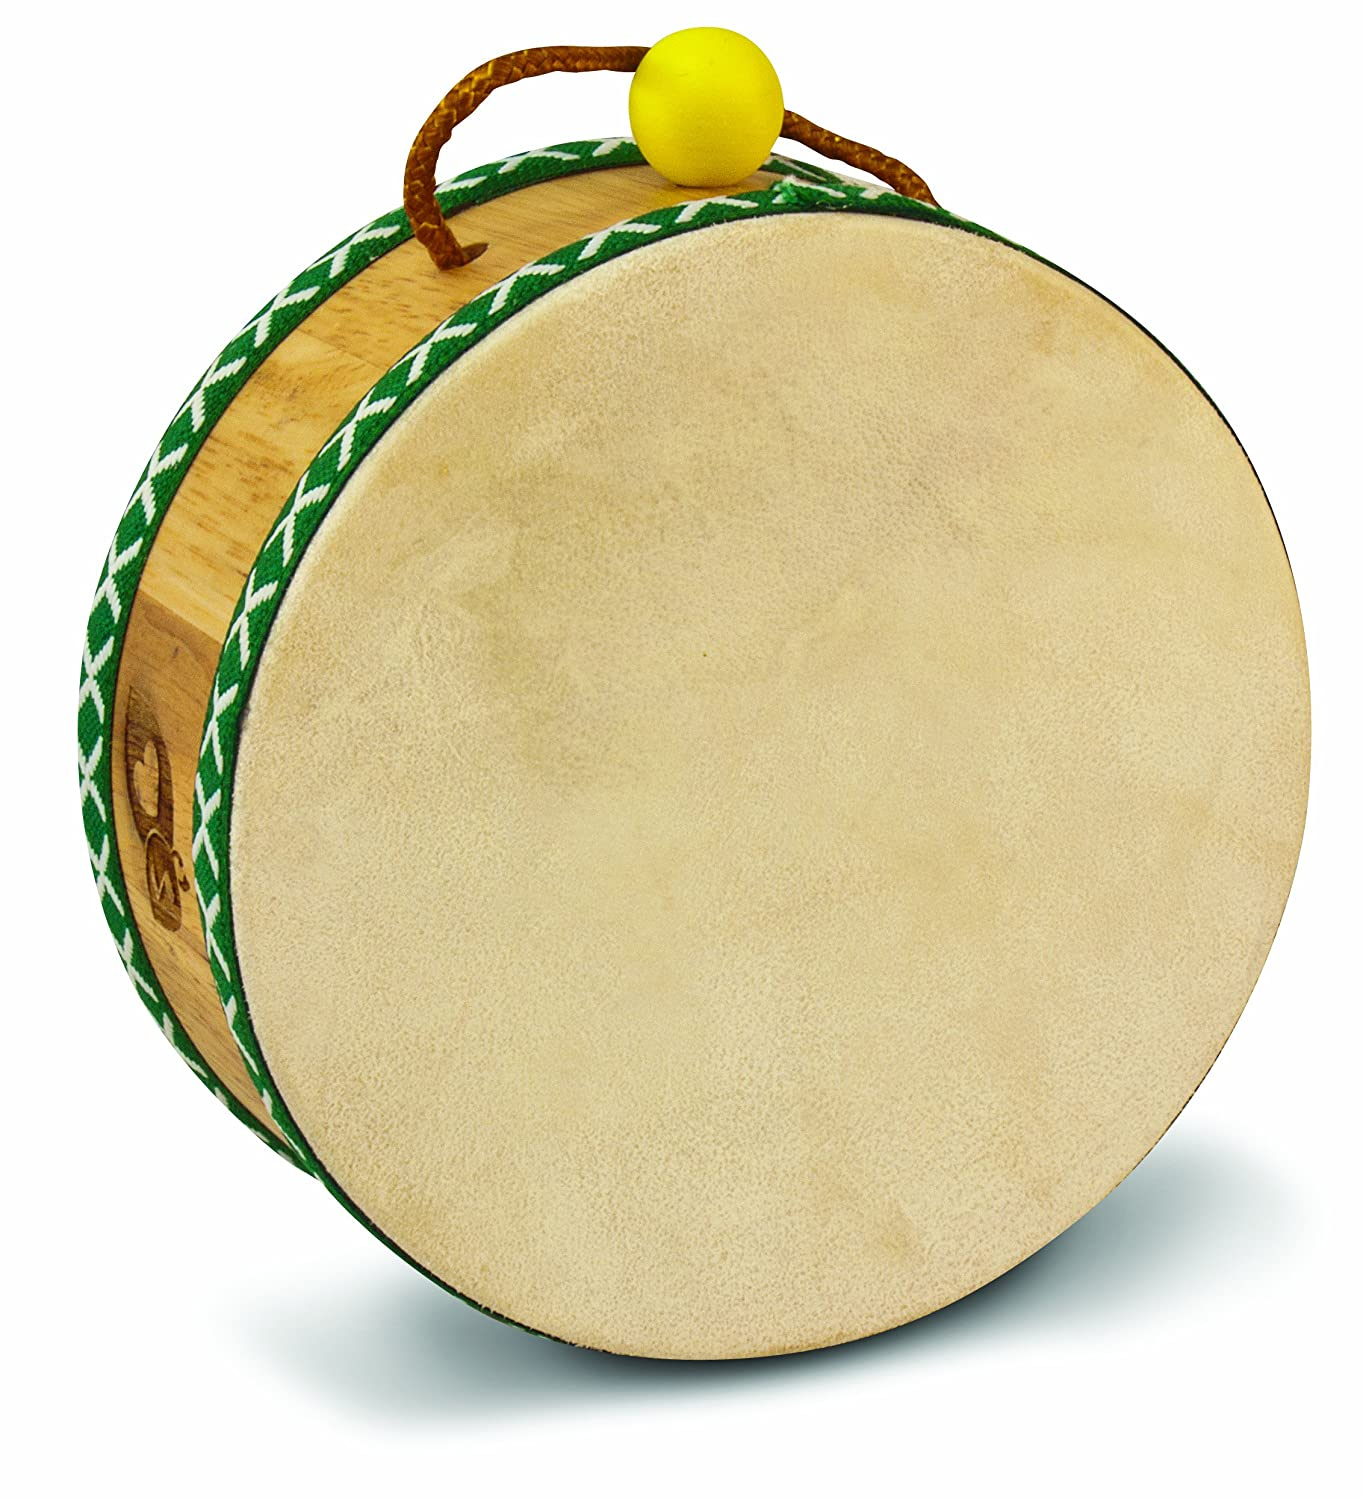 Amazon.com: Green Tones Tom Tom Drum with Mallet: Musical Instruments